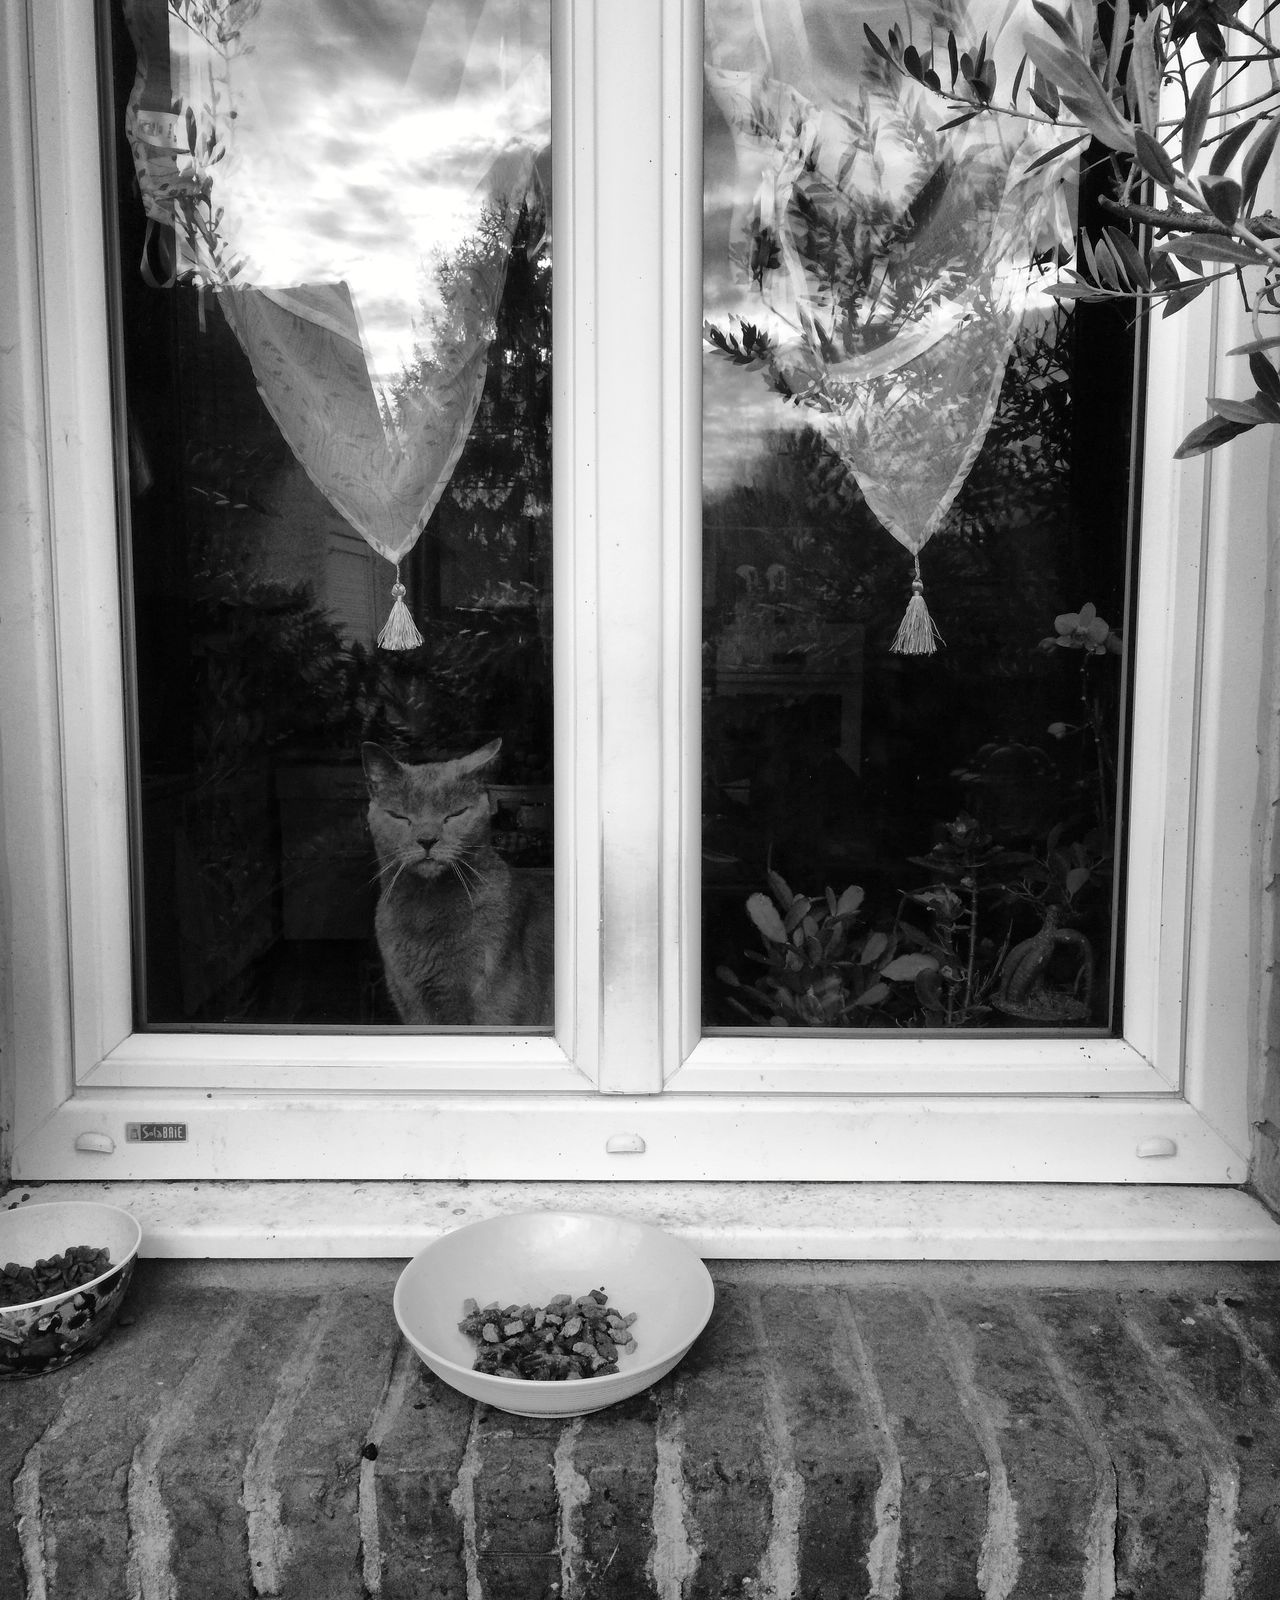 Chat à la fenêtre 🐈(verso) Window Window Sill Looking Through Window No People Black And White Domestic Animals Bnw Pets One Animal Animal Themes Domestic Cat Feline Cat Window Frame Curtain